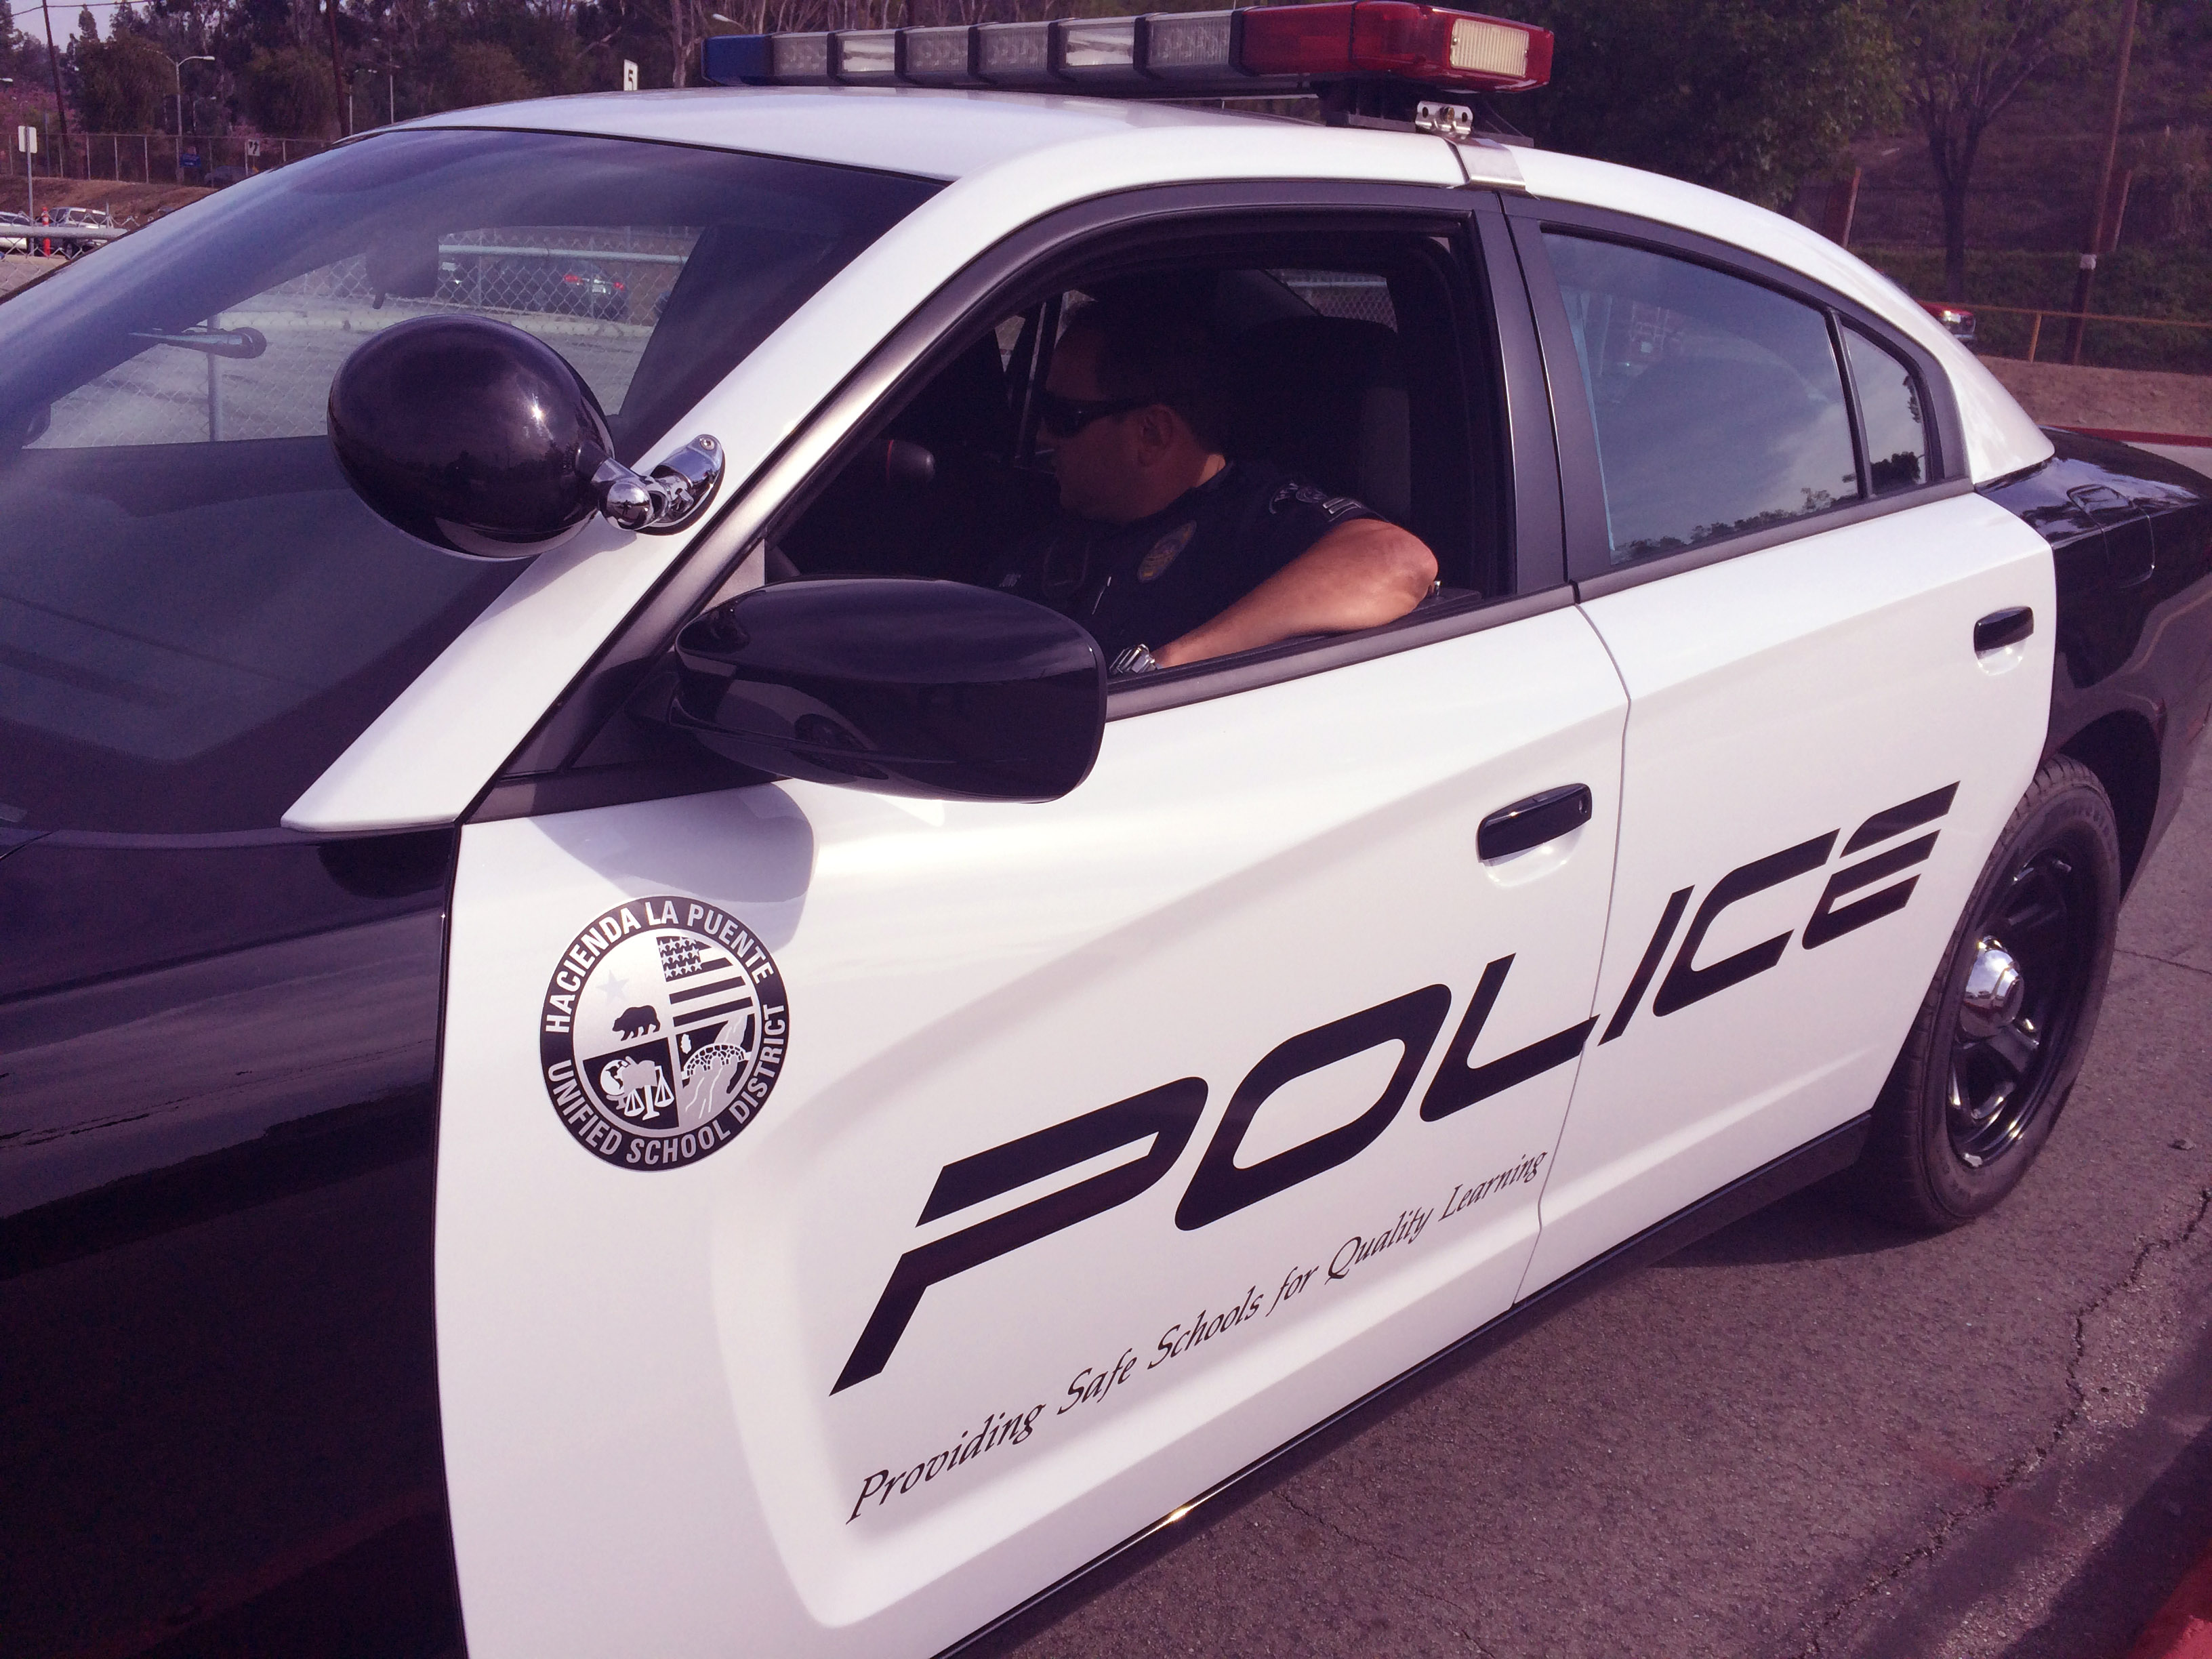 Police officer sitting in a police car